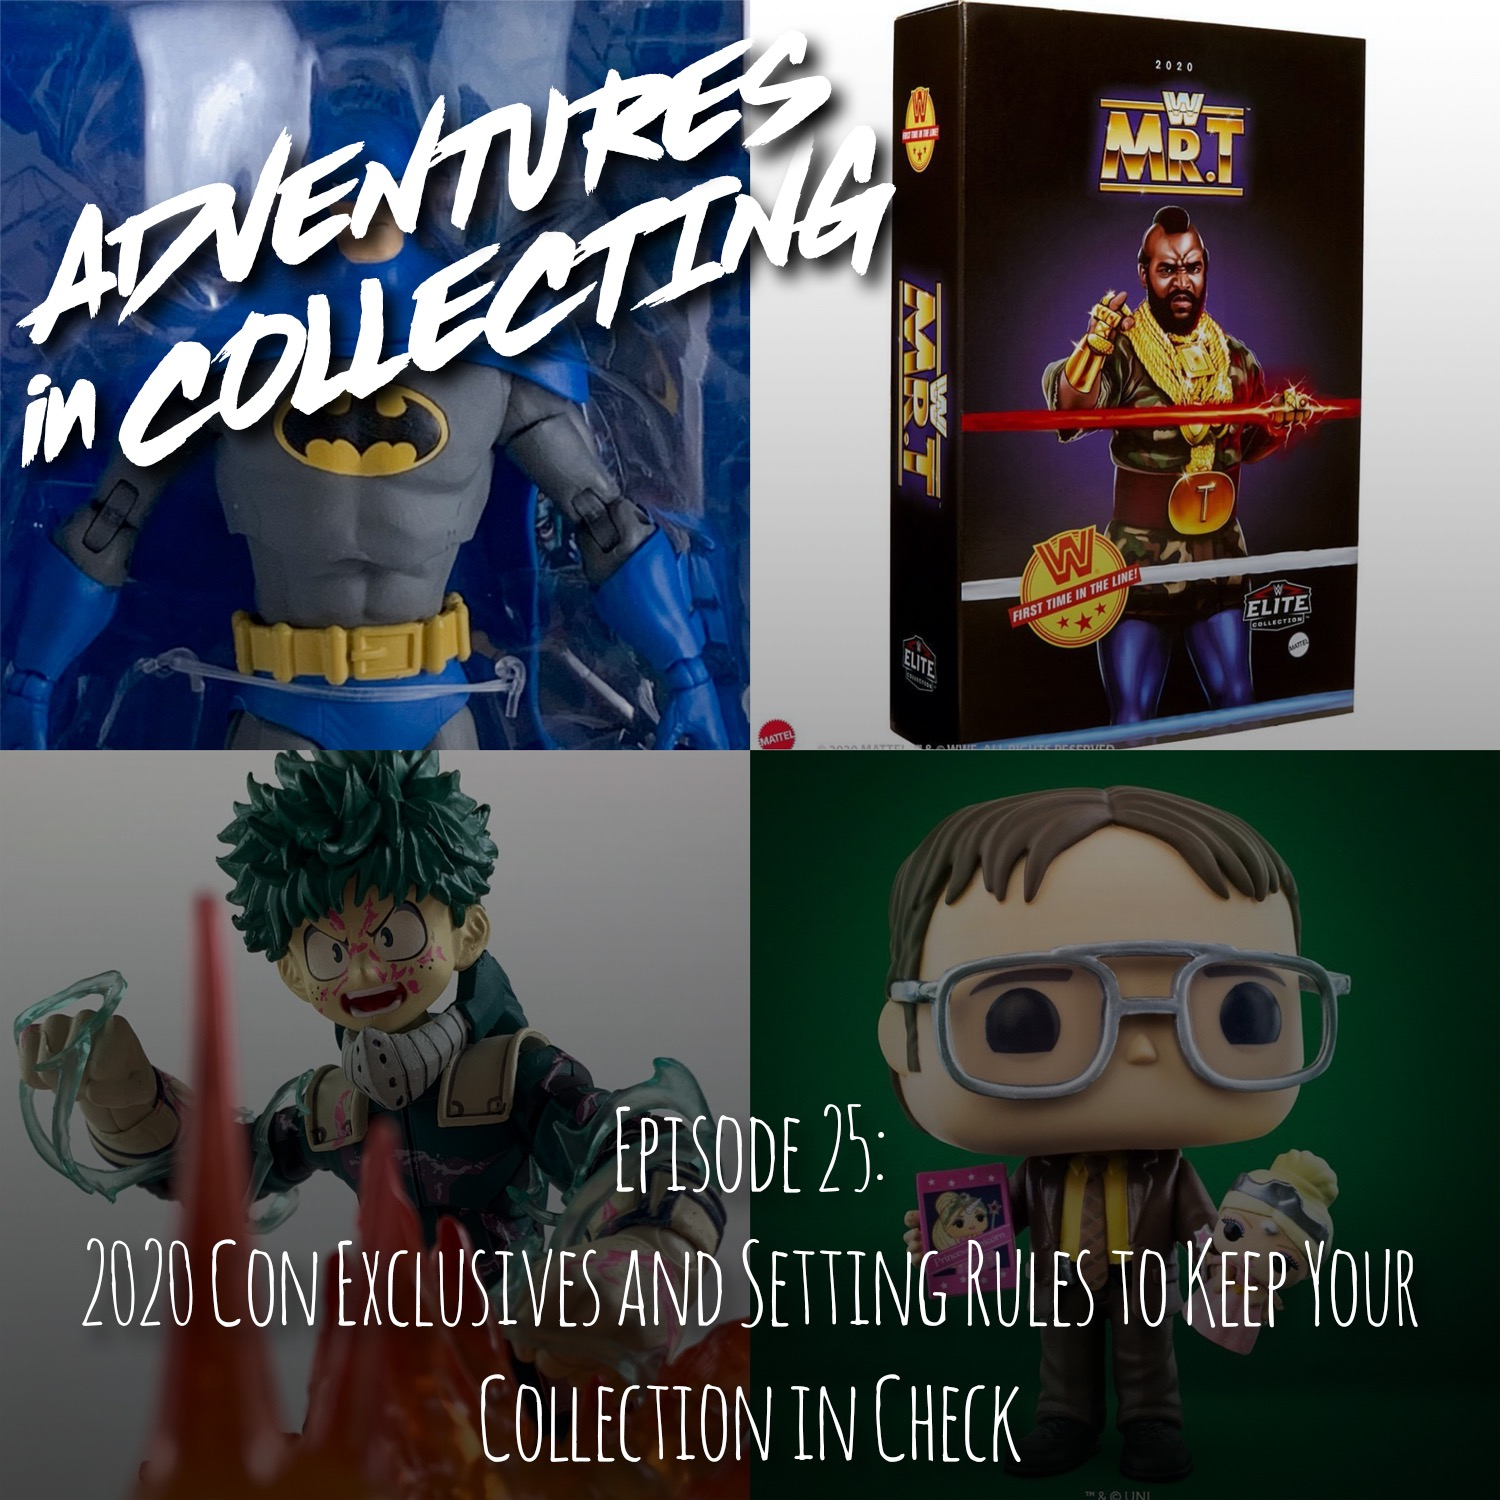 2020 Con-Exclusives and Setting Rules to Keep Your Collection in Check – Adventures in Collecting